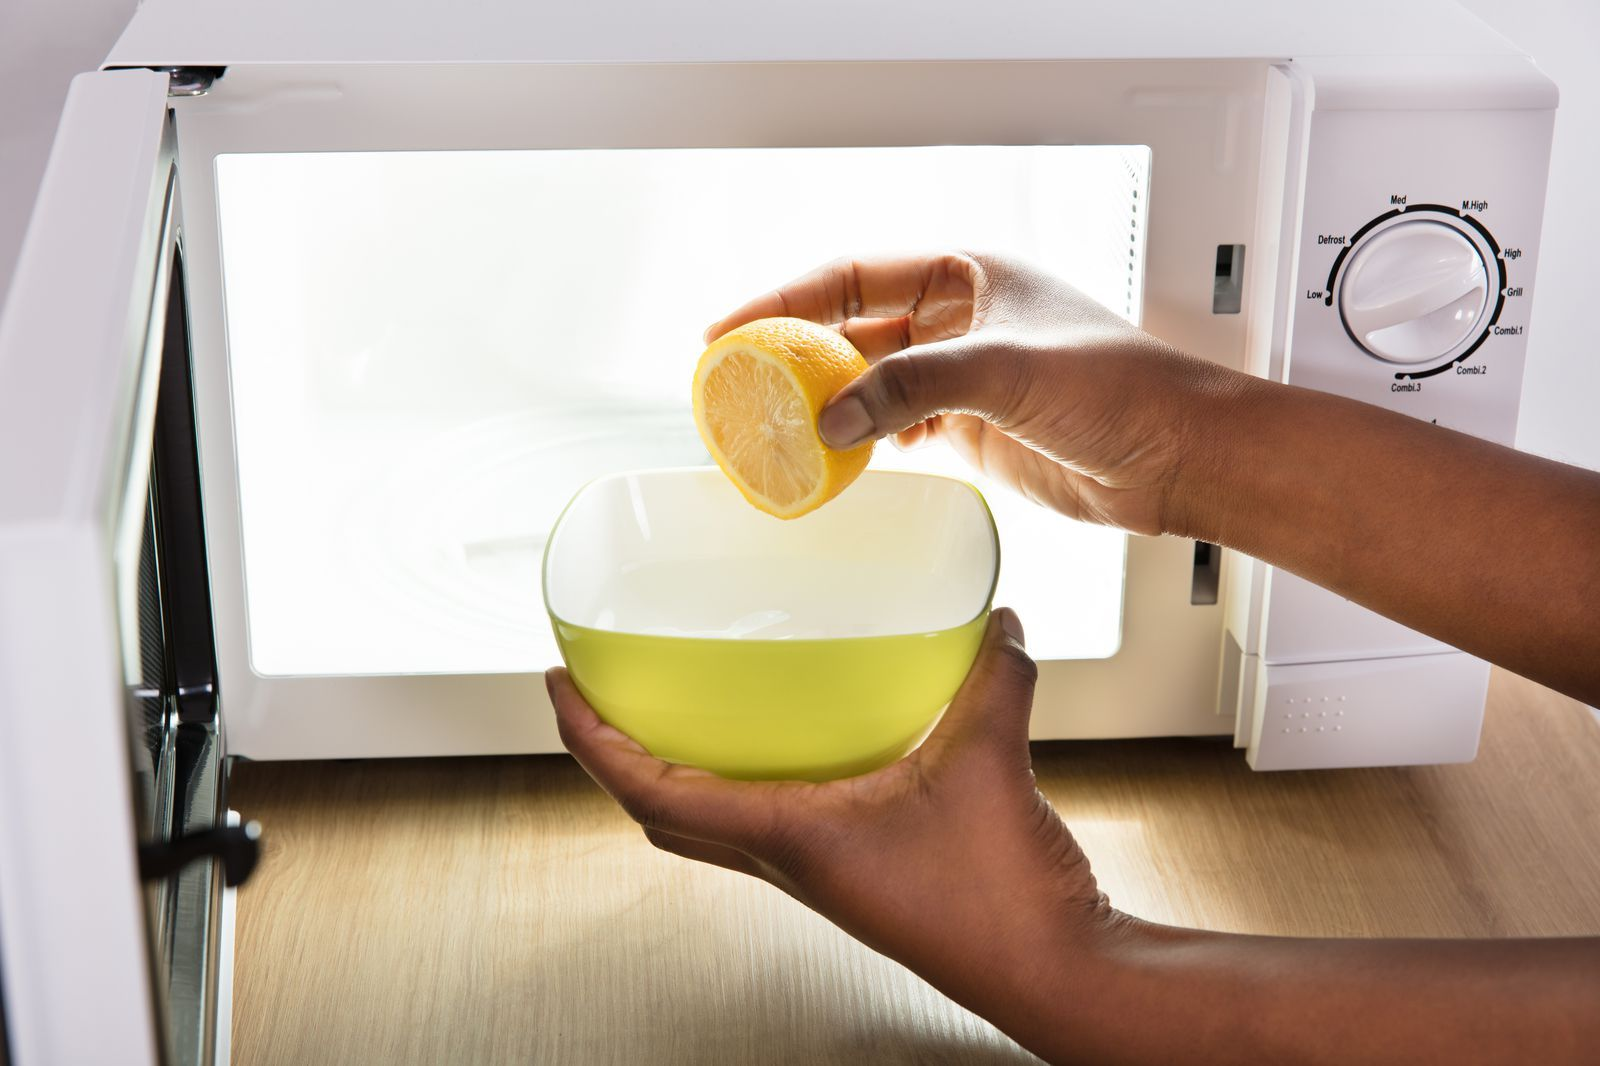 Turns Out All You Need To Clean Your Microwave Is One Lemon